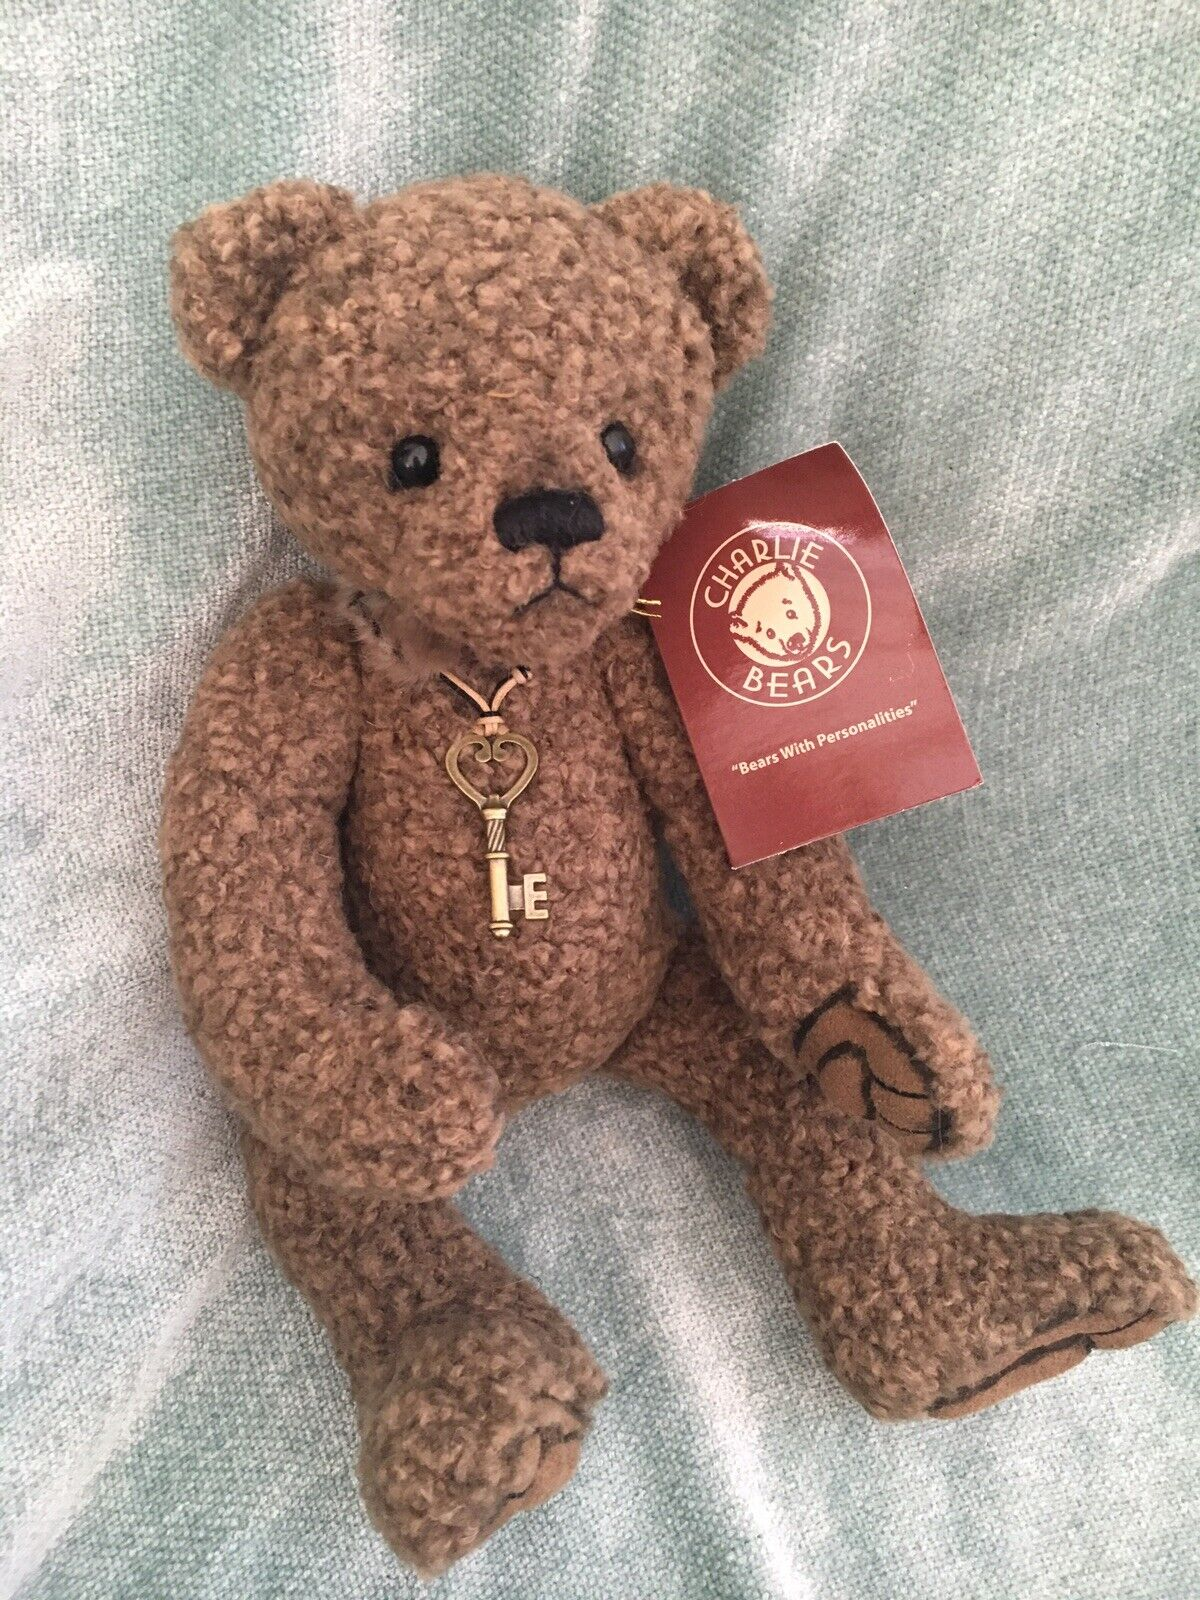 BRAND NEW CHARLIE BEAR WITH GIFT Tasche - AYLA